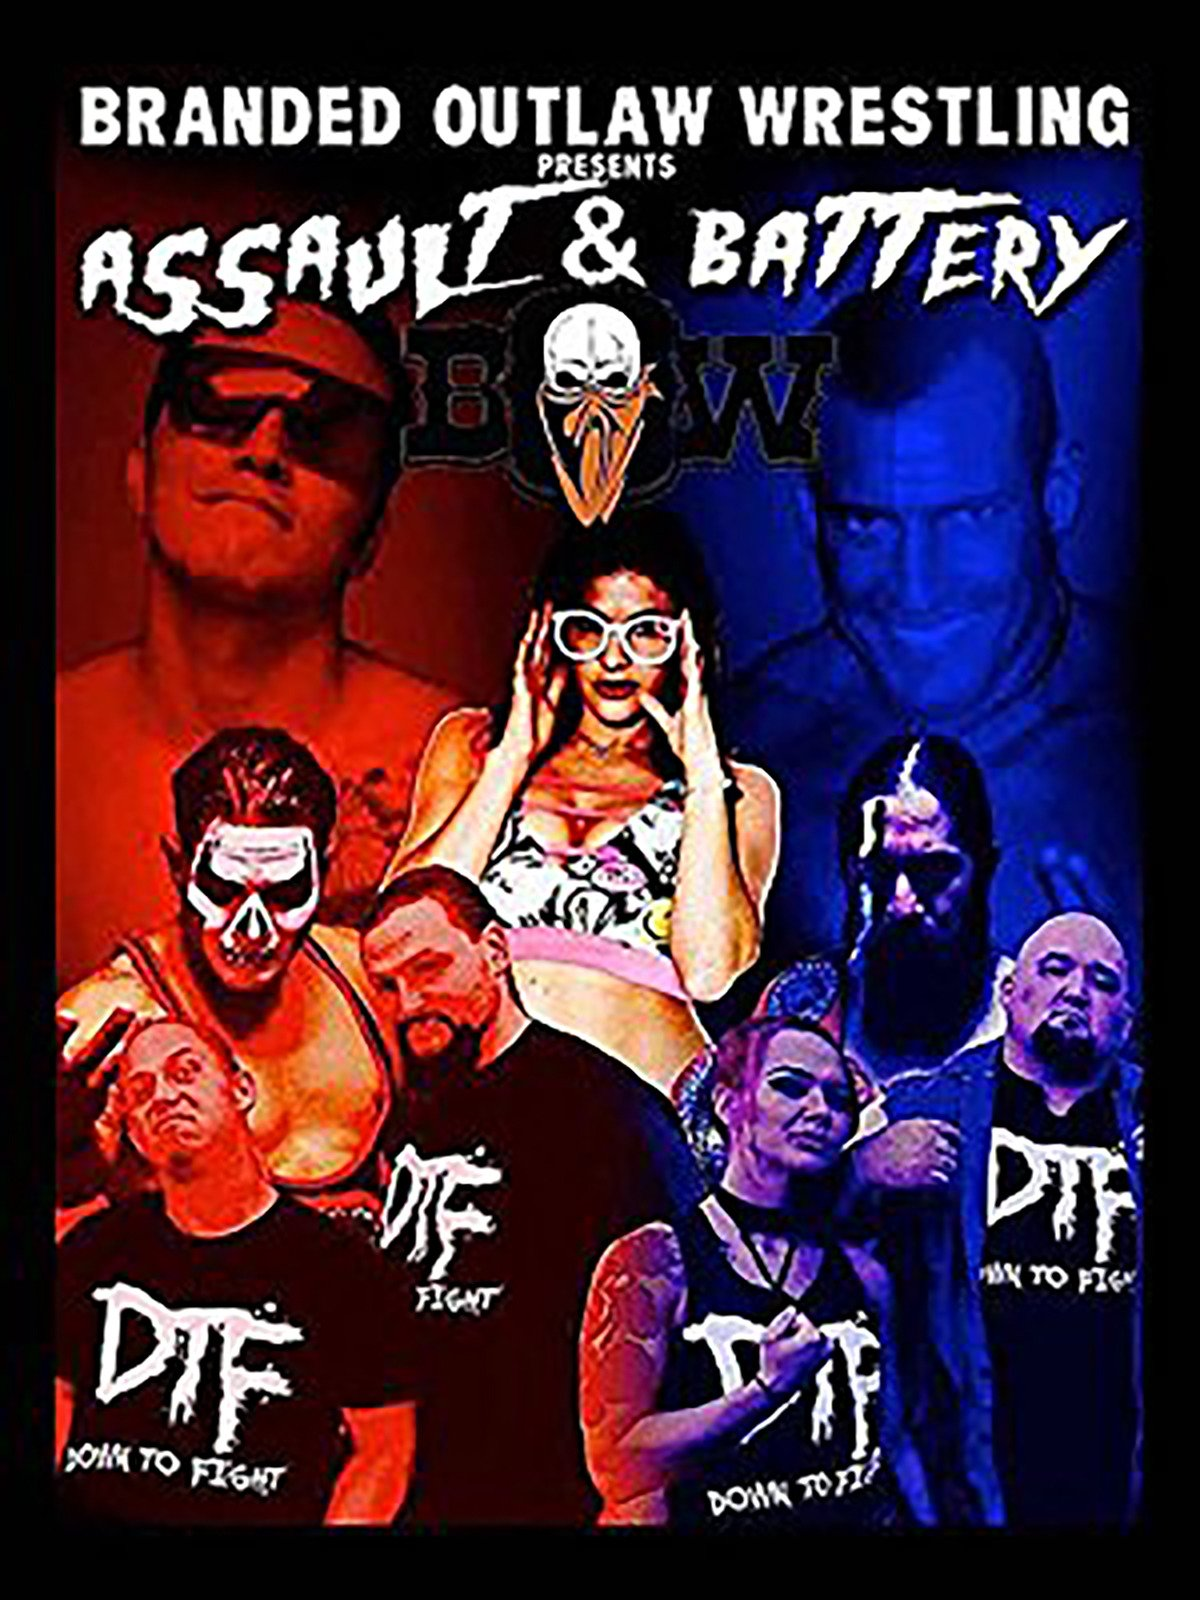 Branded Outlaw Wrestling: Assault & Battery 2017